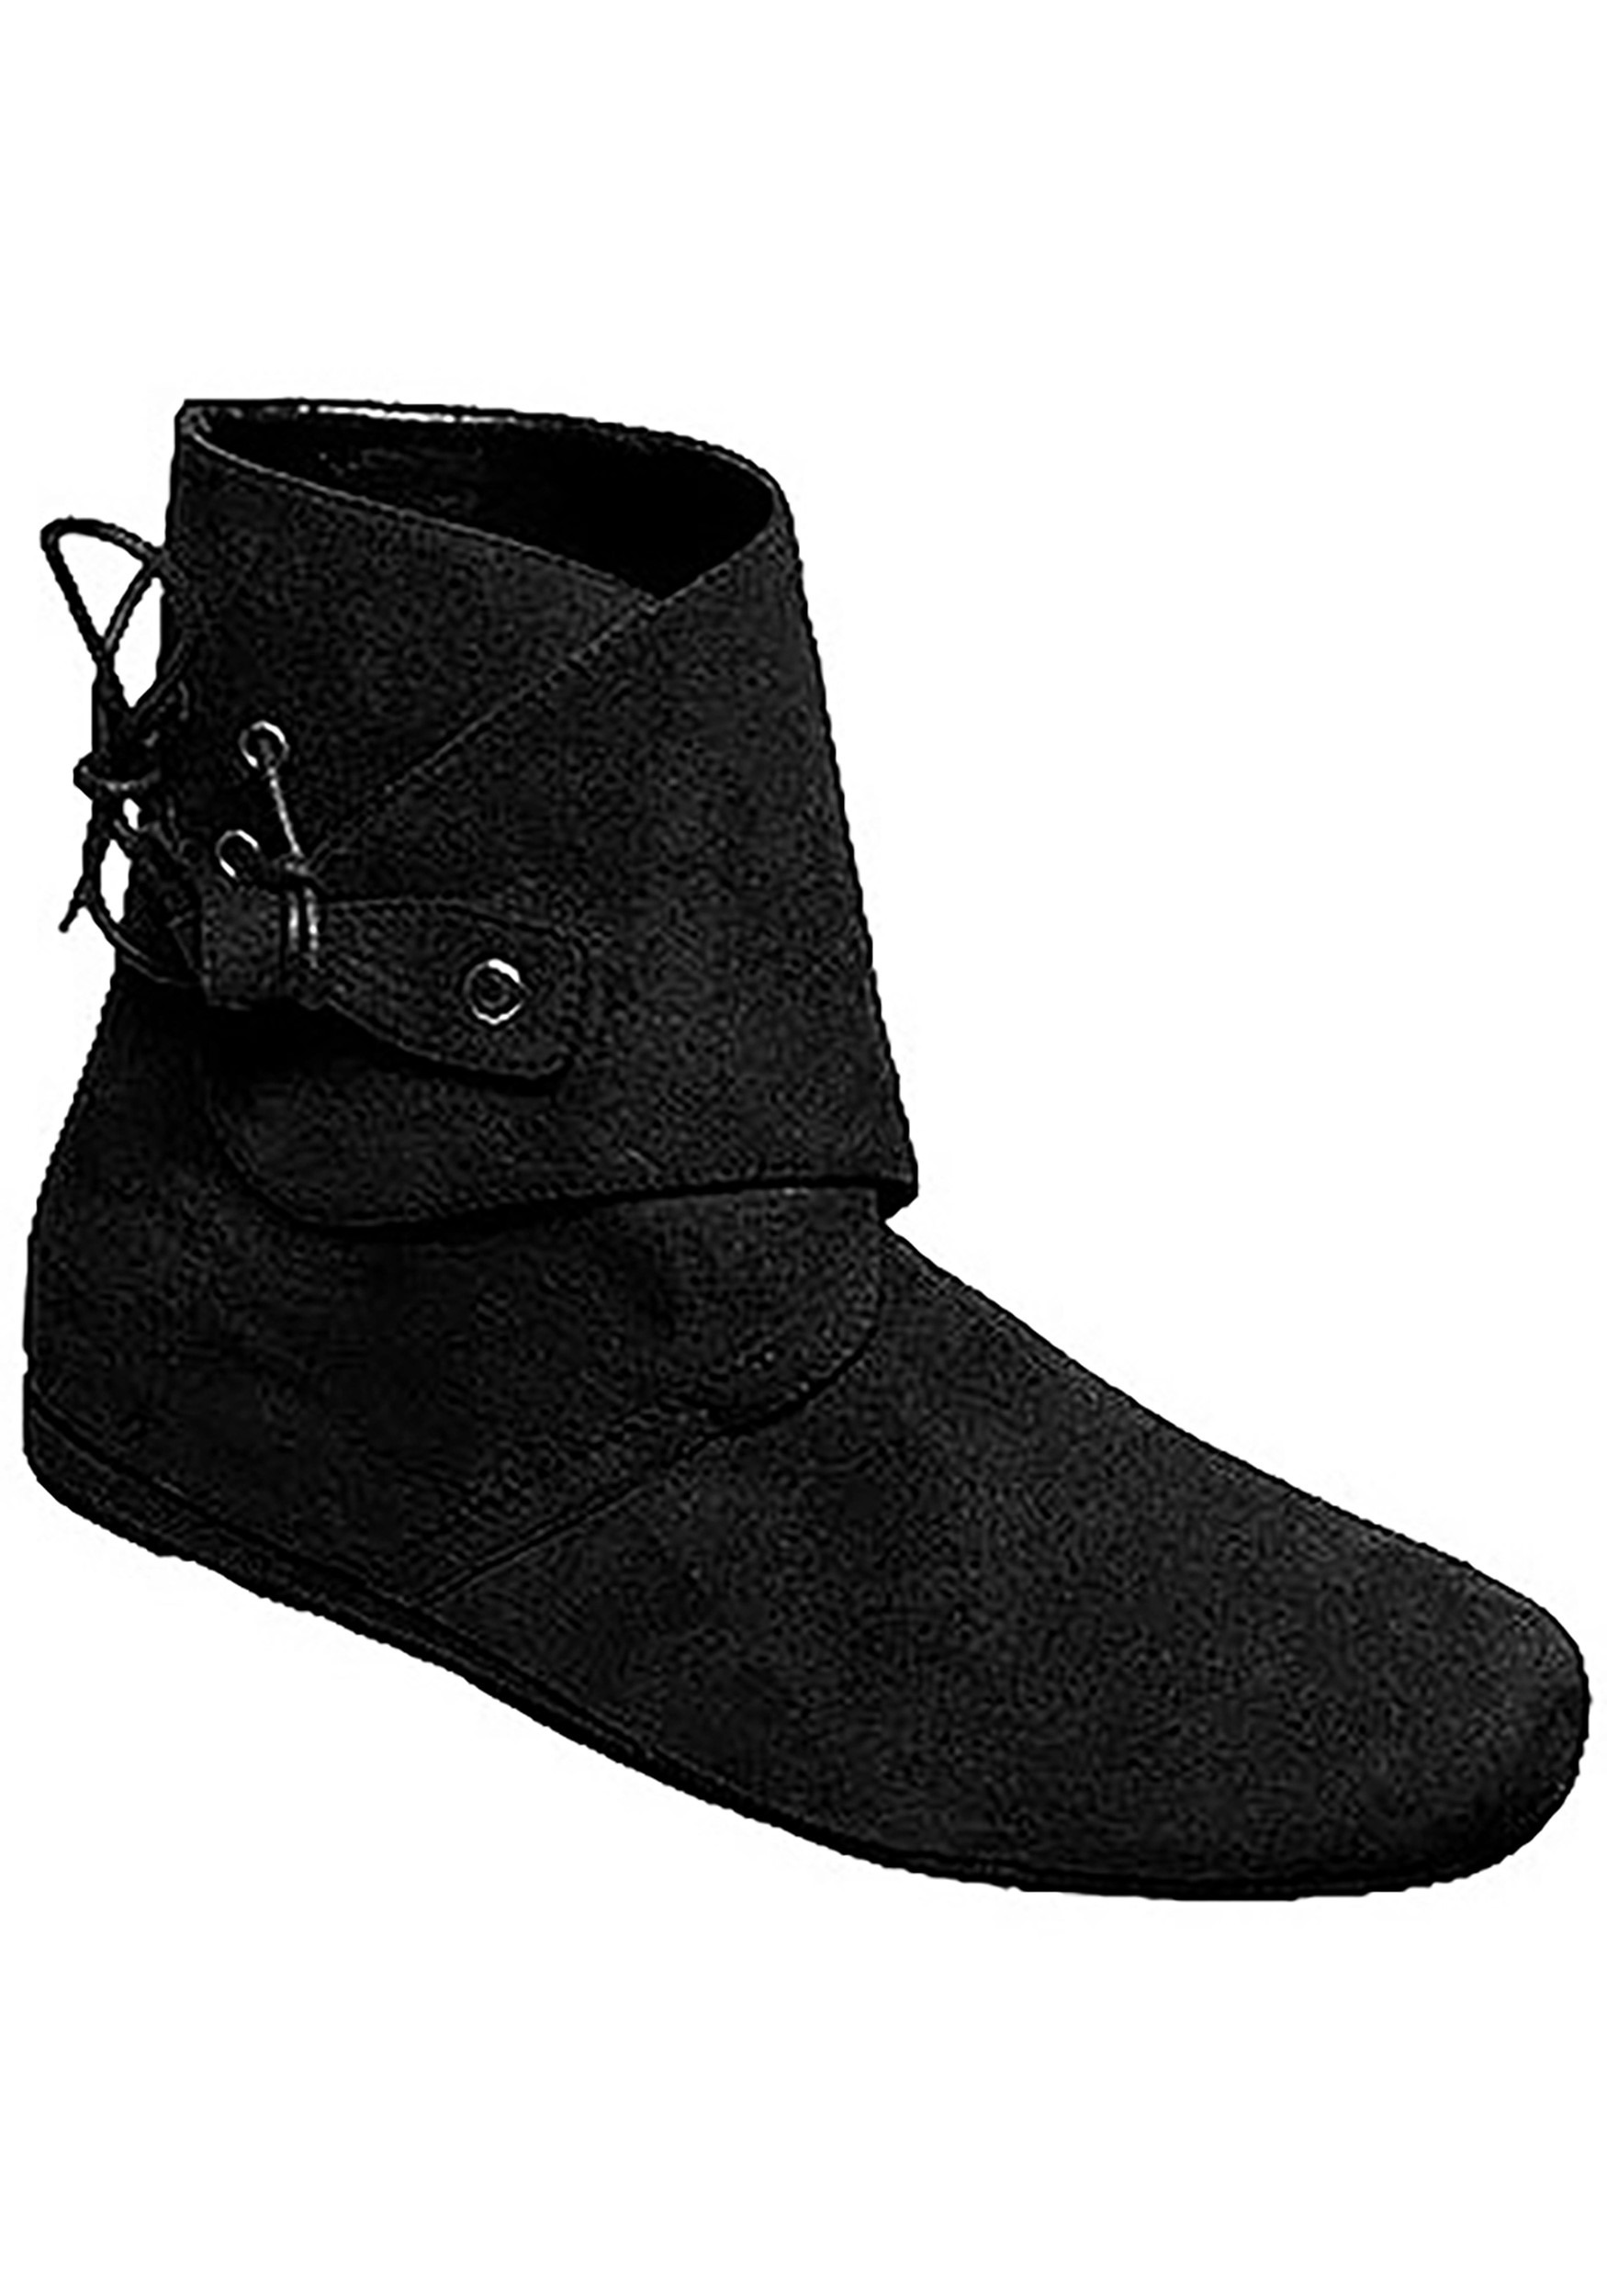 Men's Black Renaissance Shoes